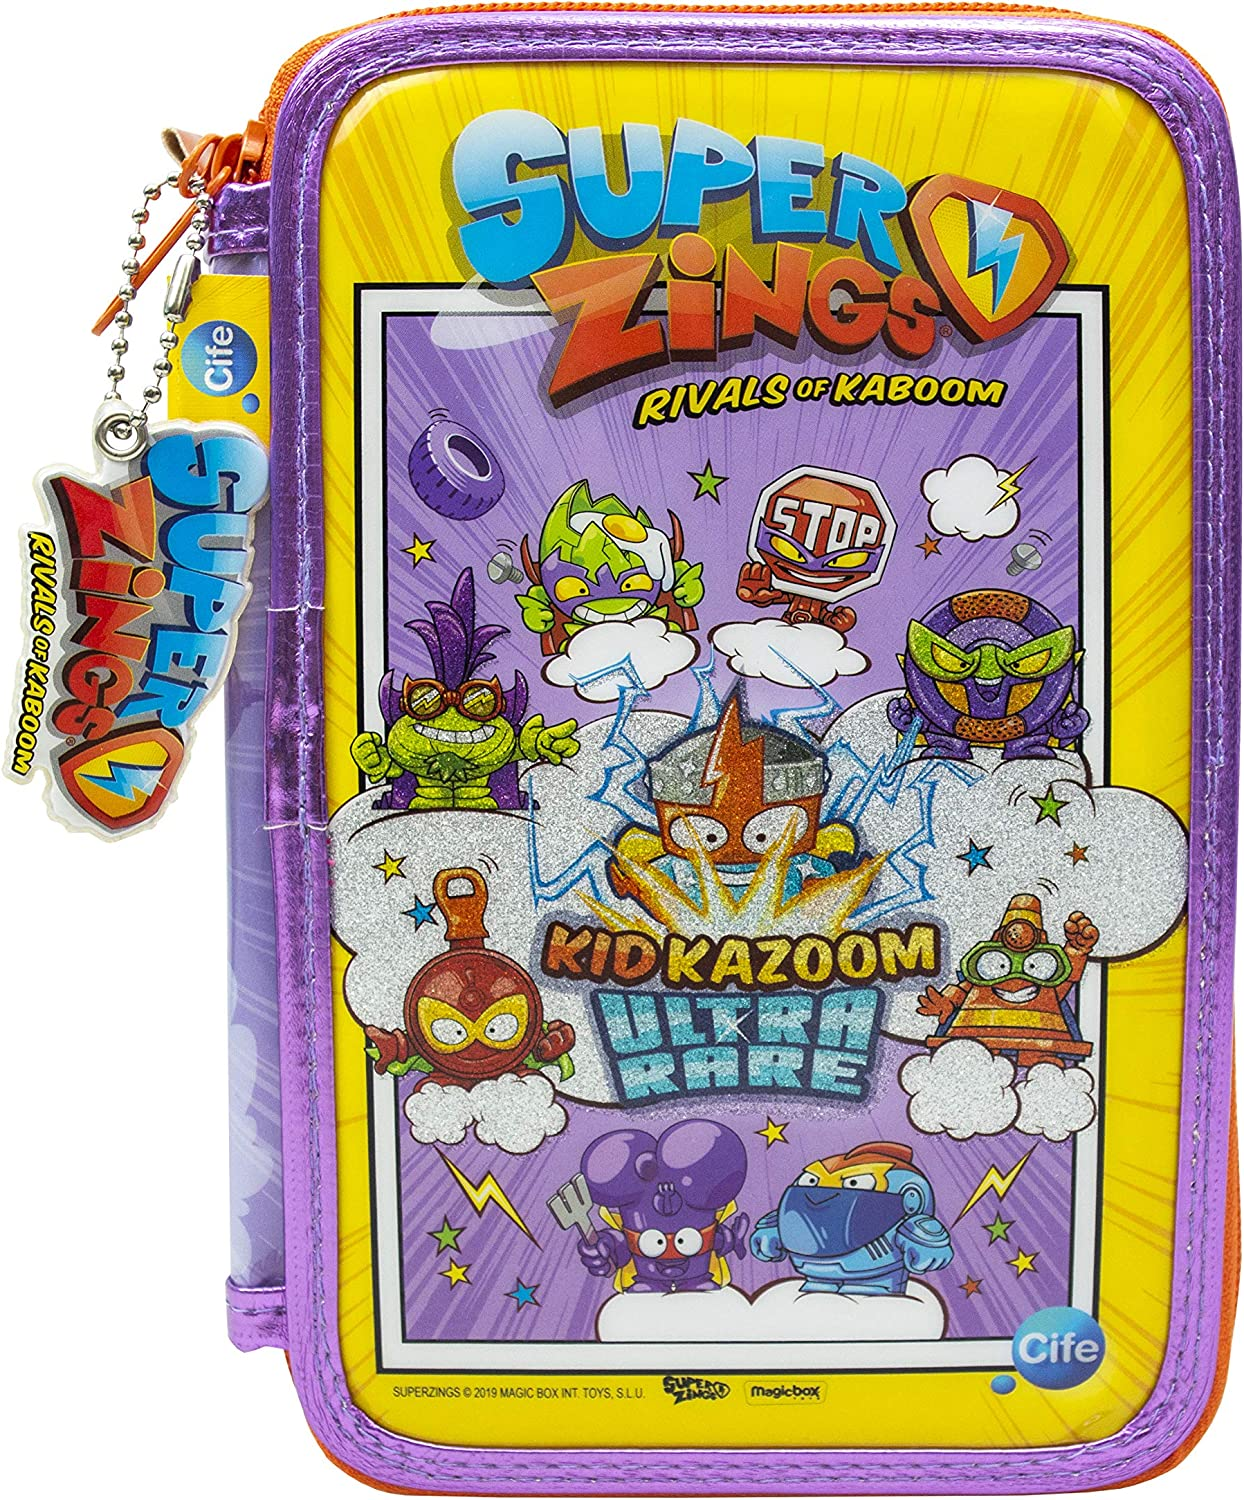 SUPERZINGS Estuche Triple-Kit Completo Material Escolar, Multicolor (Cife 41940): Amazon.es: Juguetes y juegos